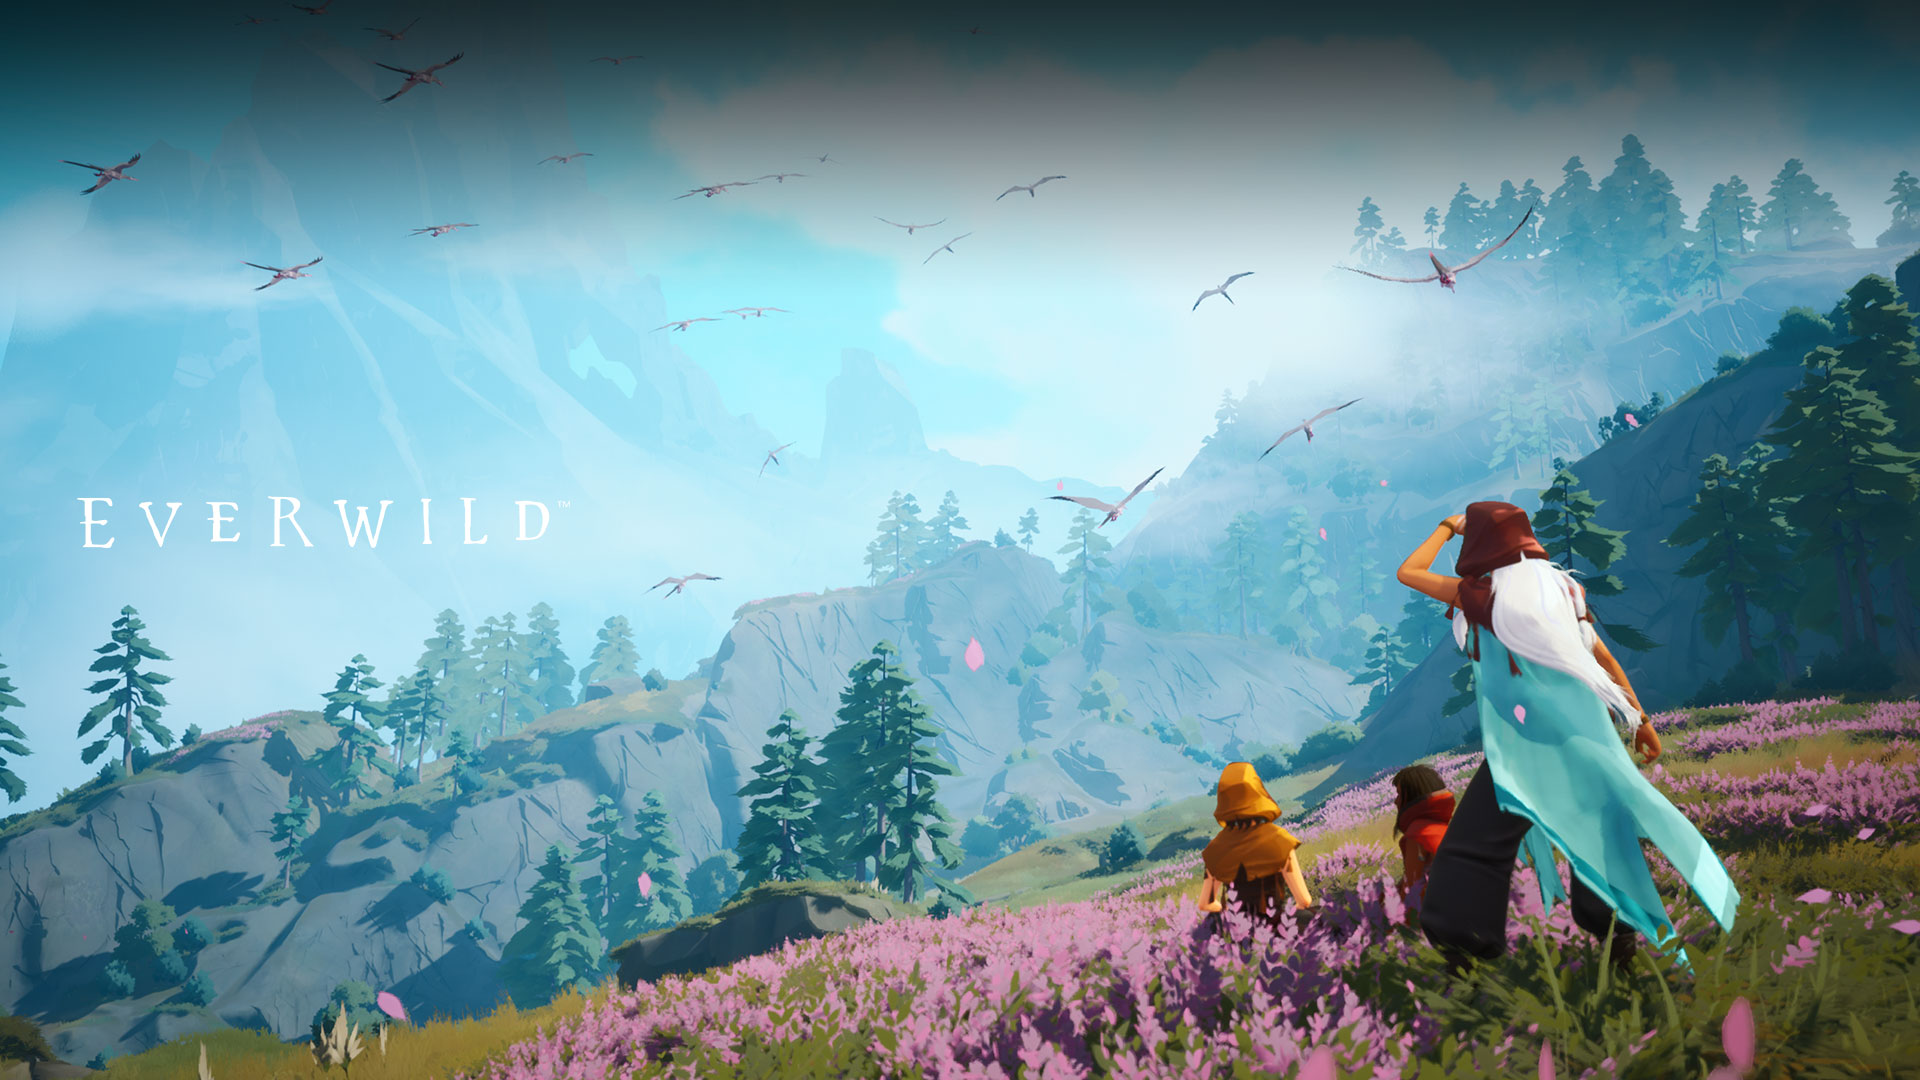 Everwild. Three characters in a field with mountains, birds and trees.